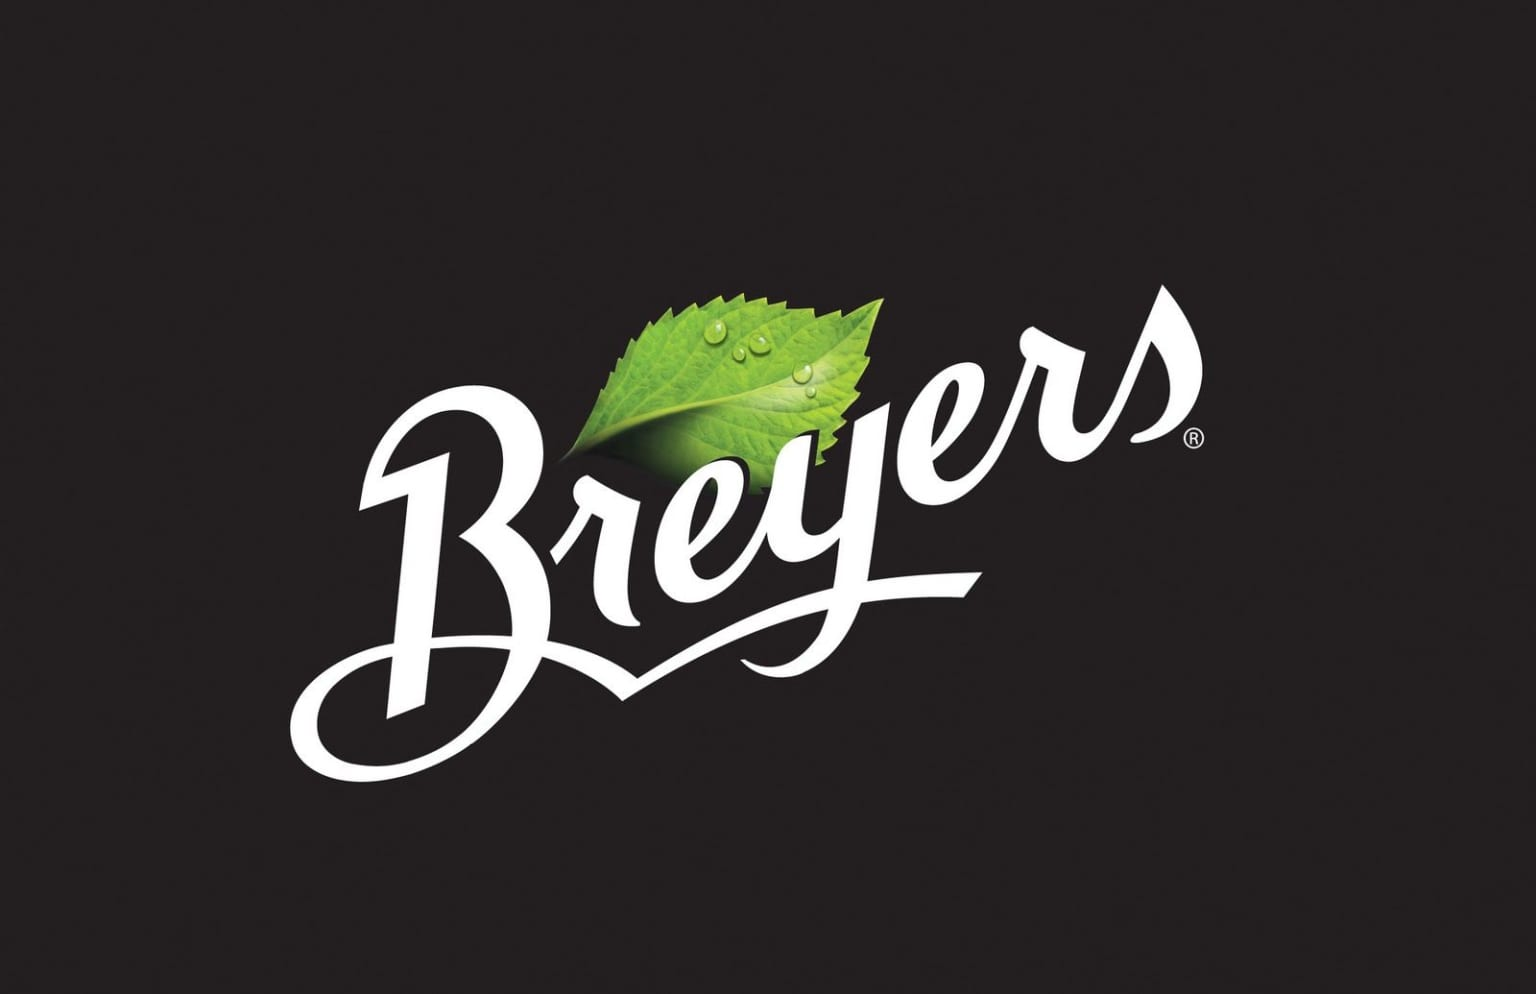 Breyers Ice Cream: 100 Years of Going With Everything